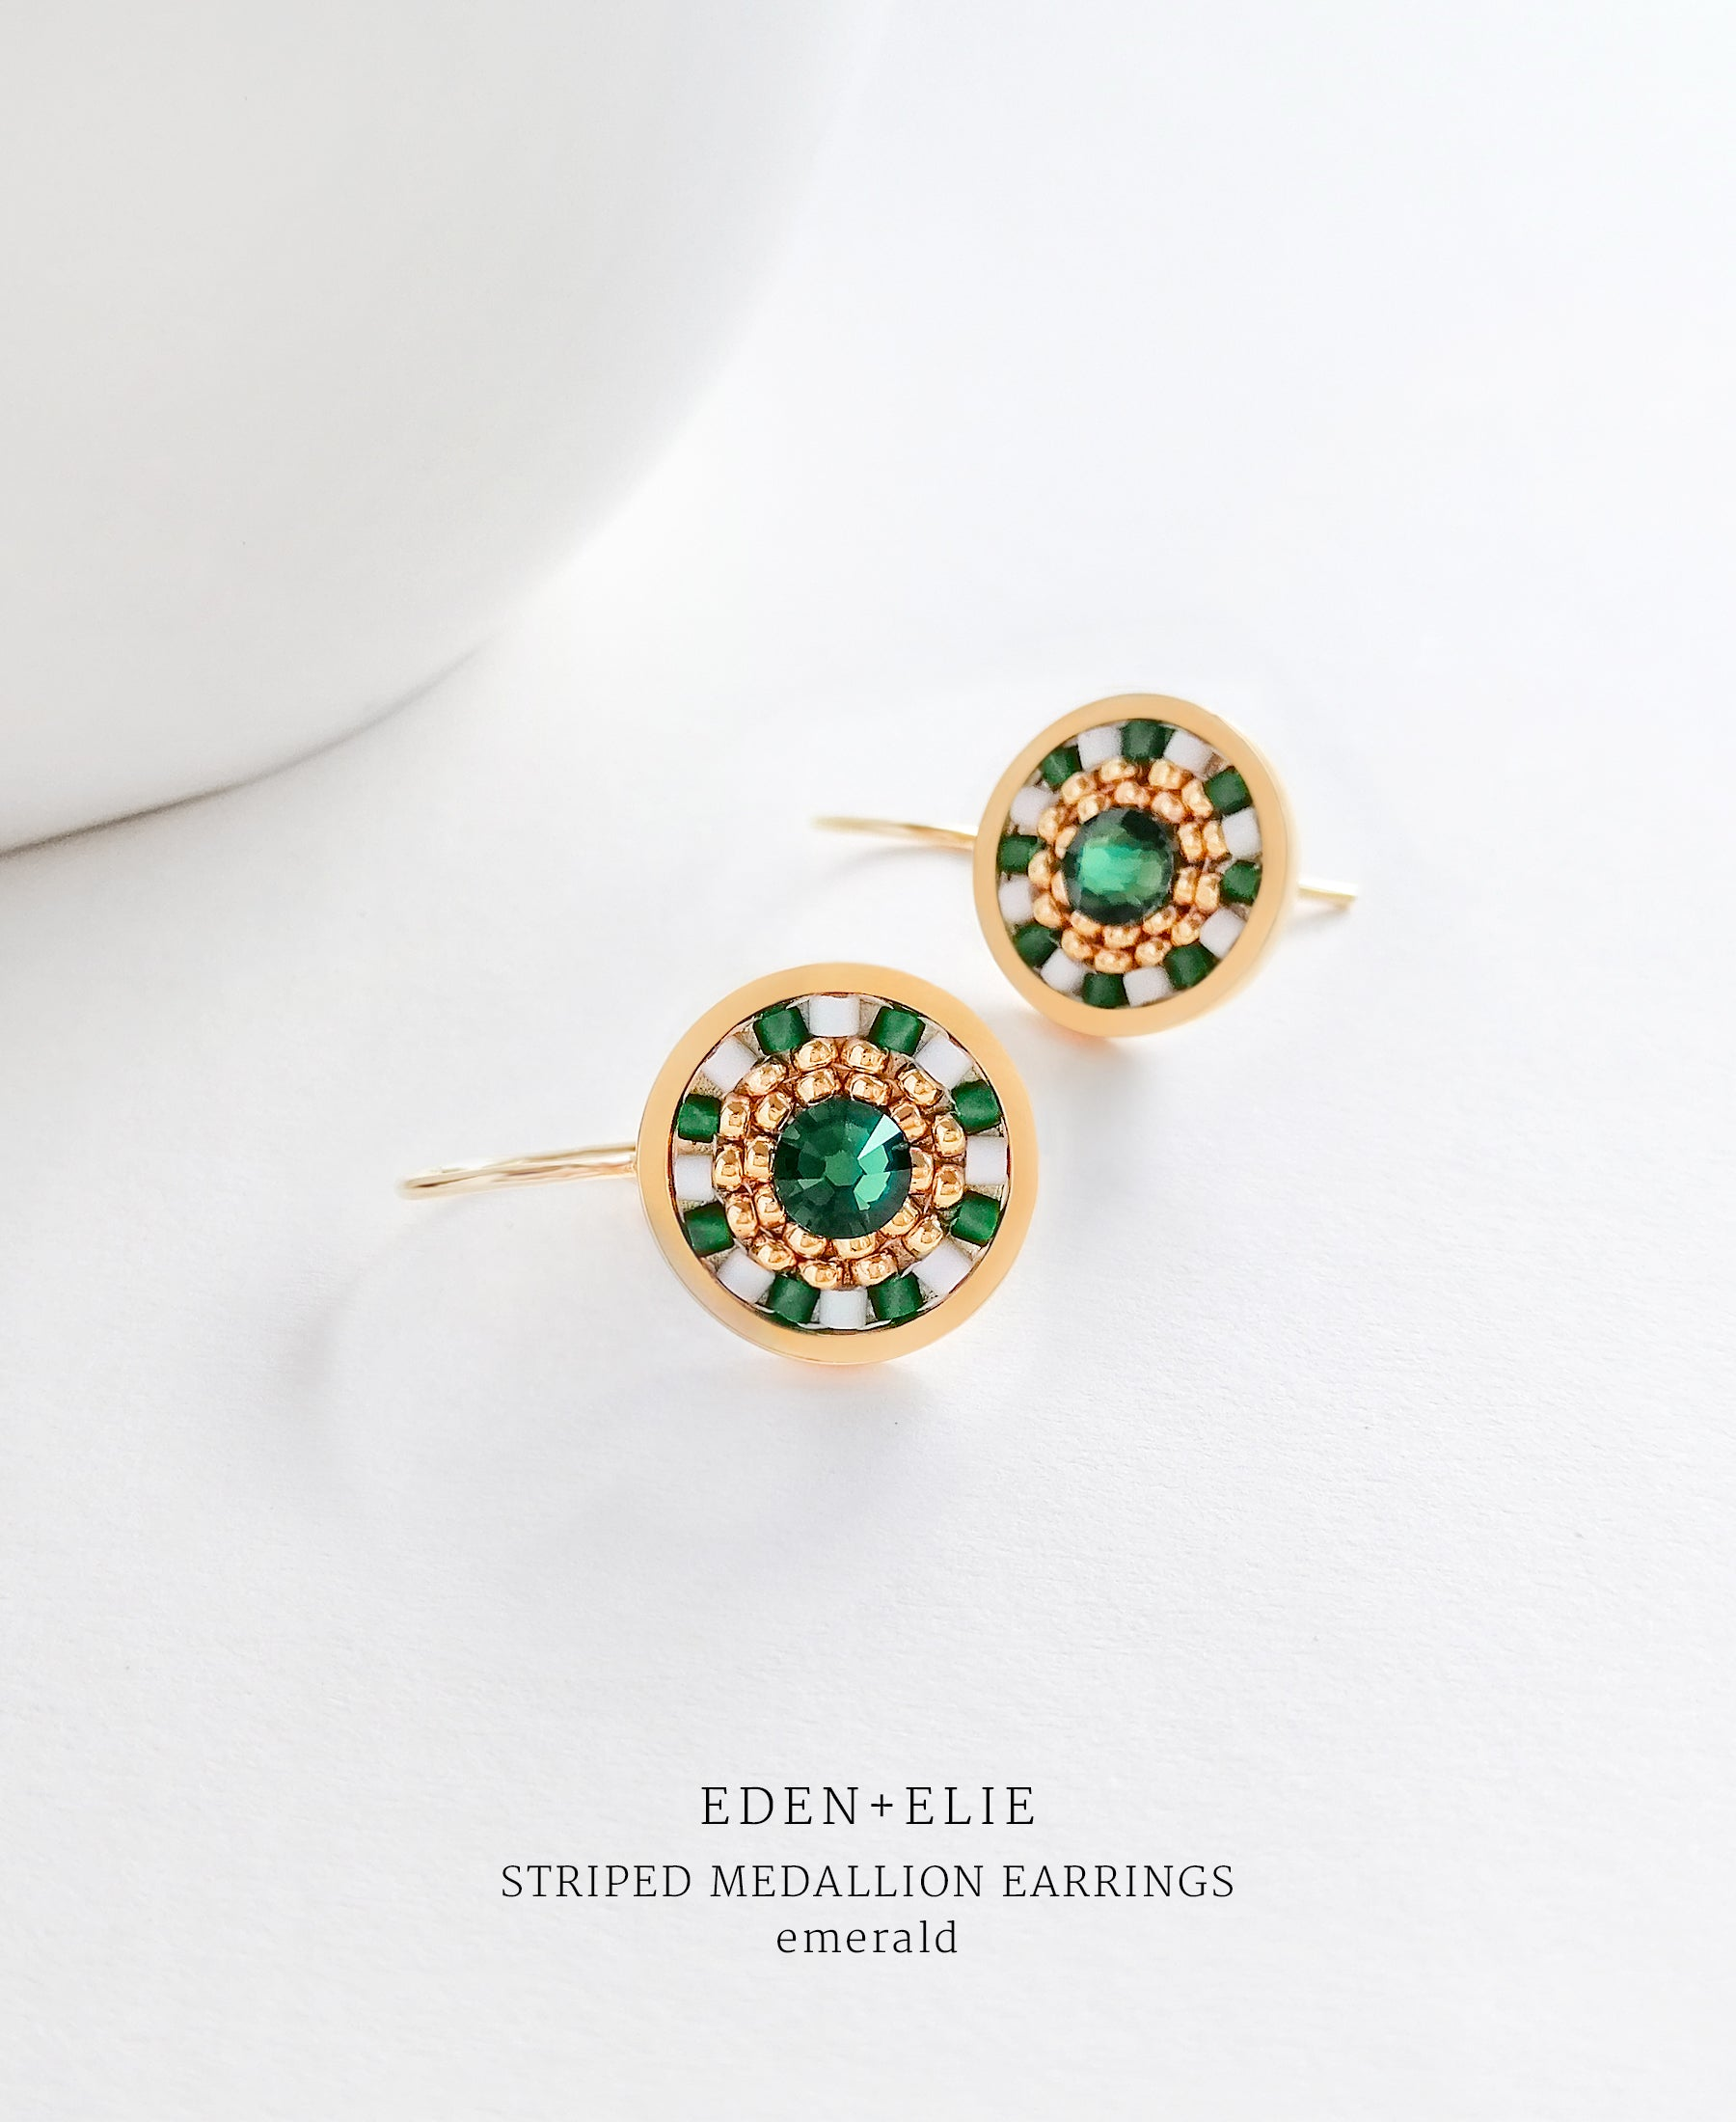 EDEN + ELIE Striped Medallion drop earrings - emerald